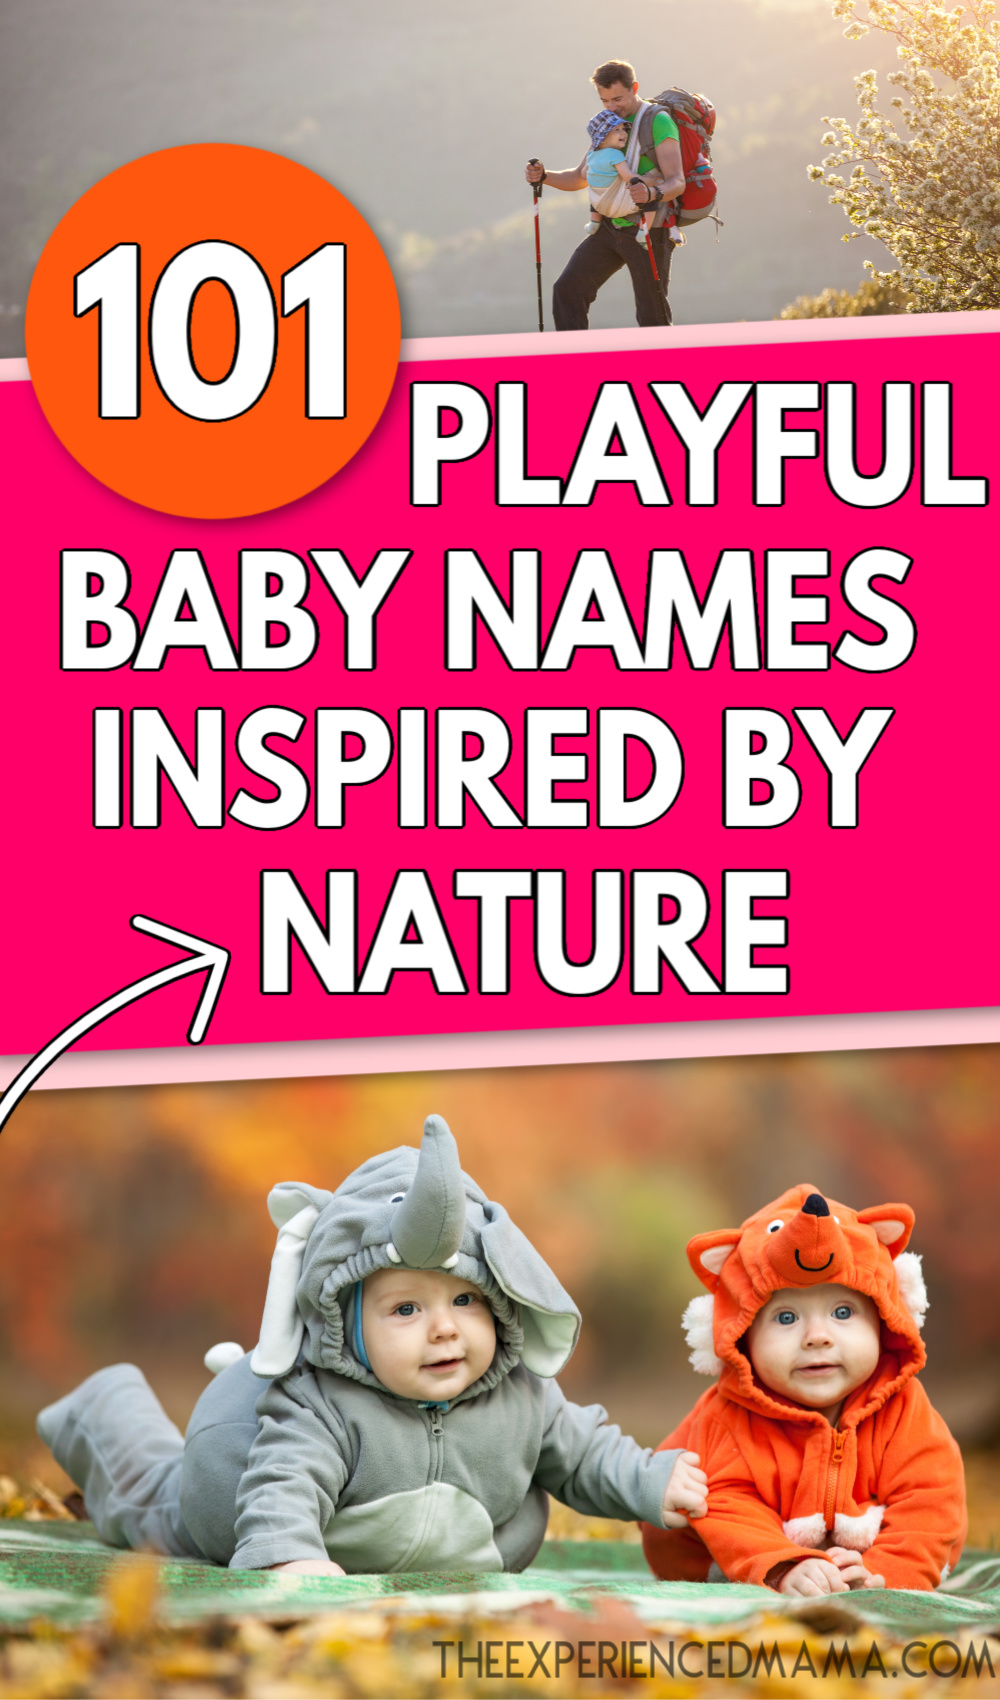 babies with whimsical nature baby names in costumes